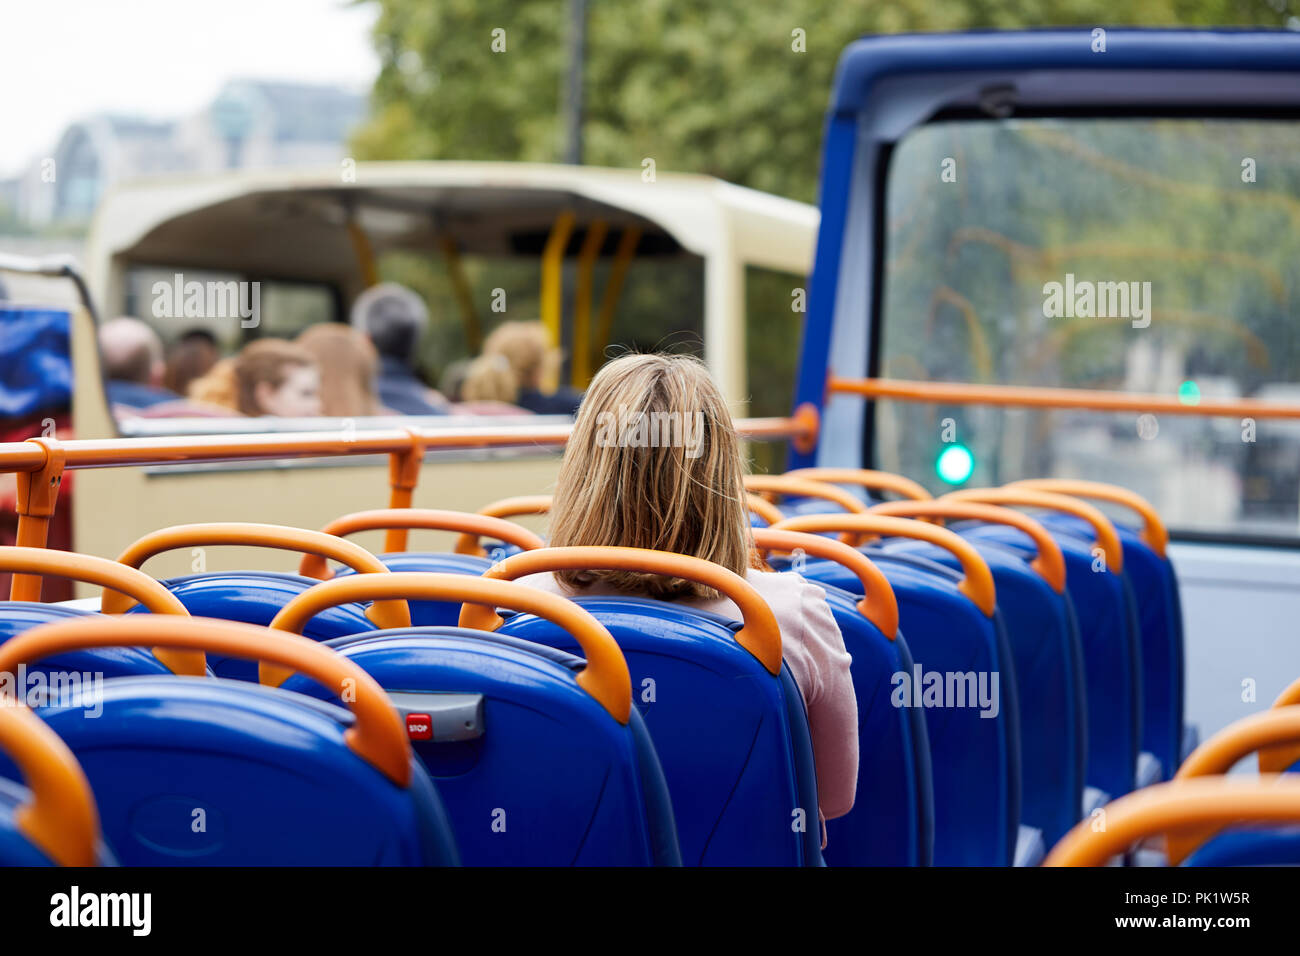 A sightseer on a London tourist bus . - Stock Image